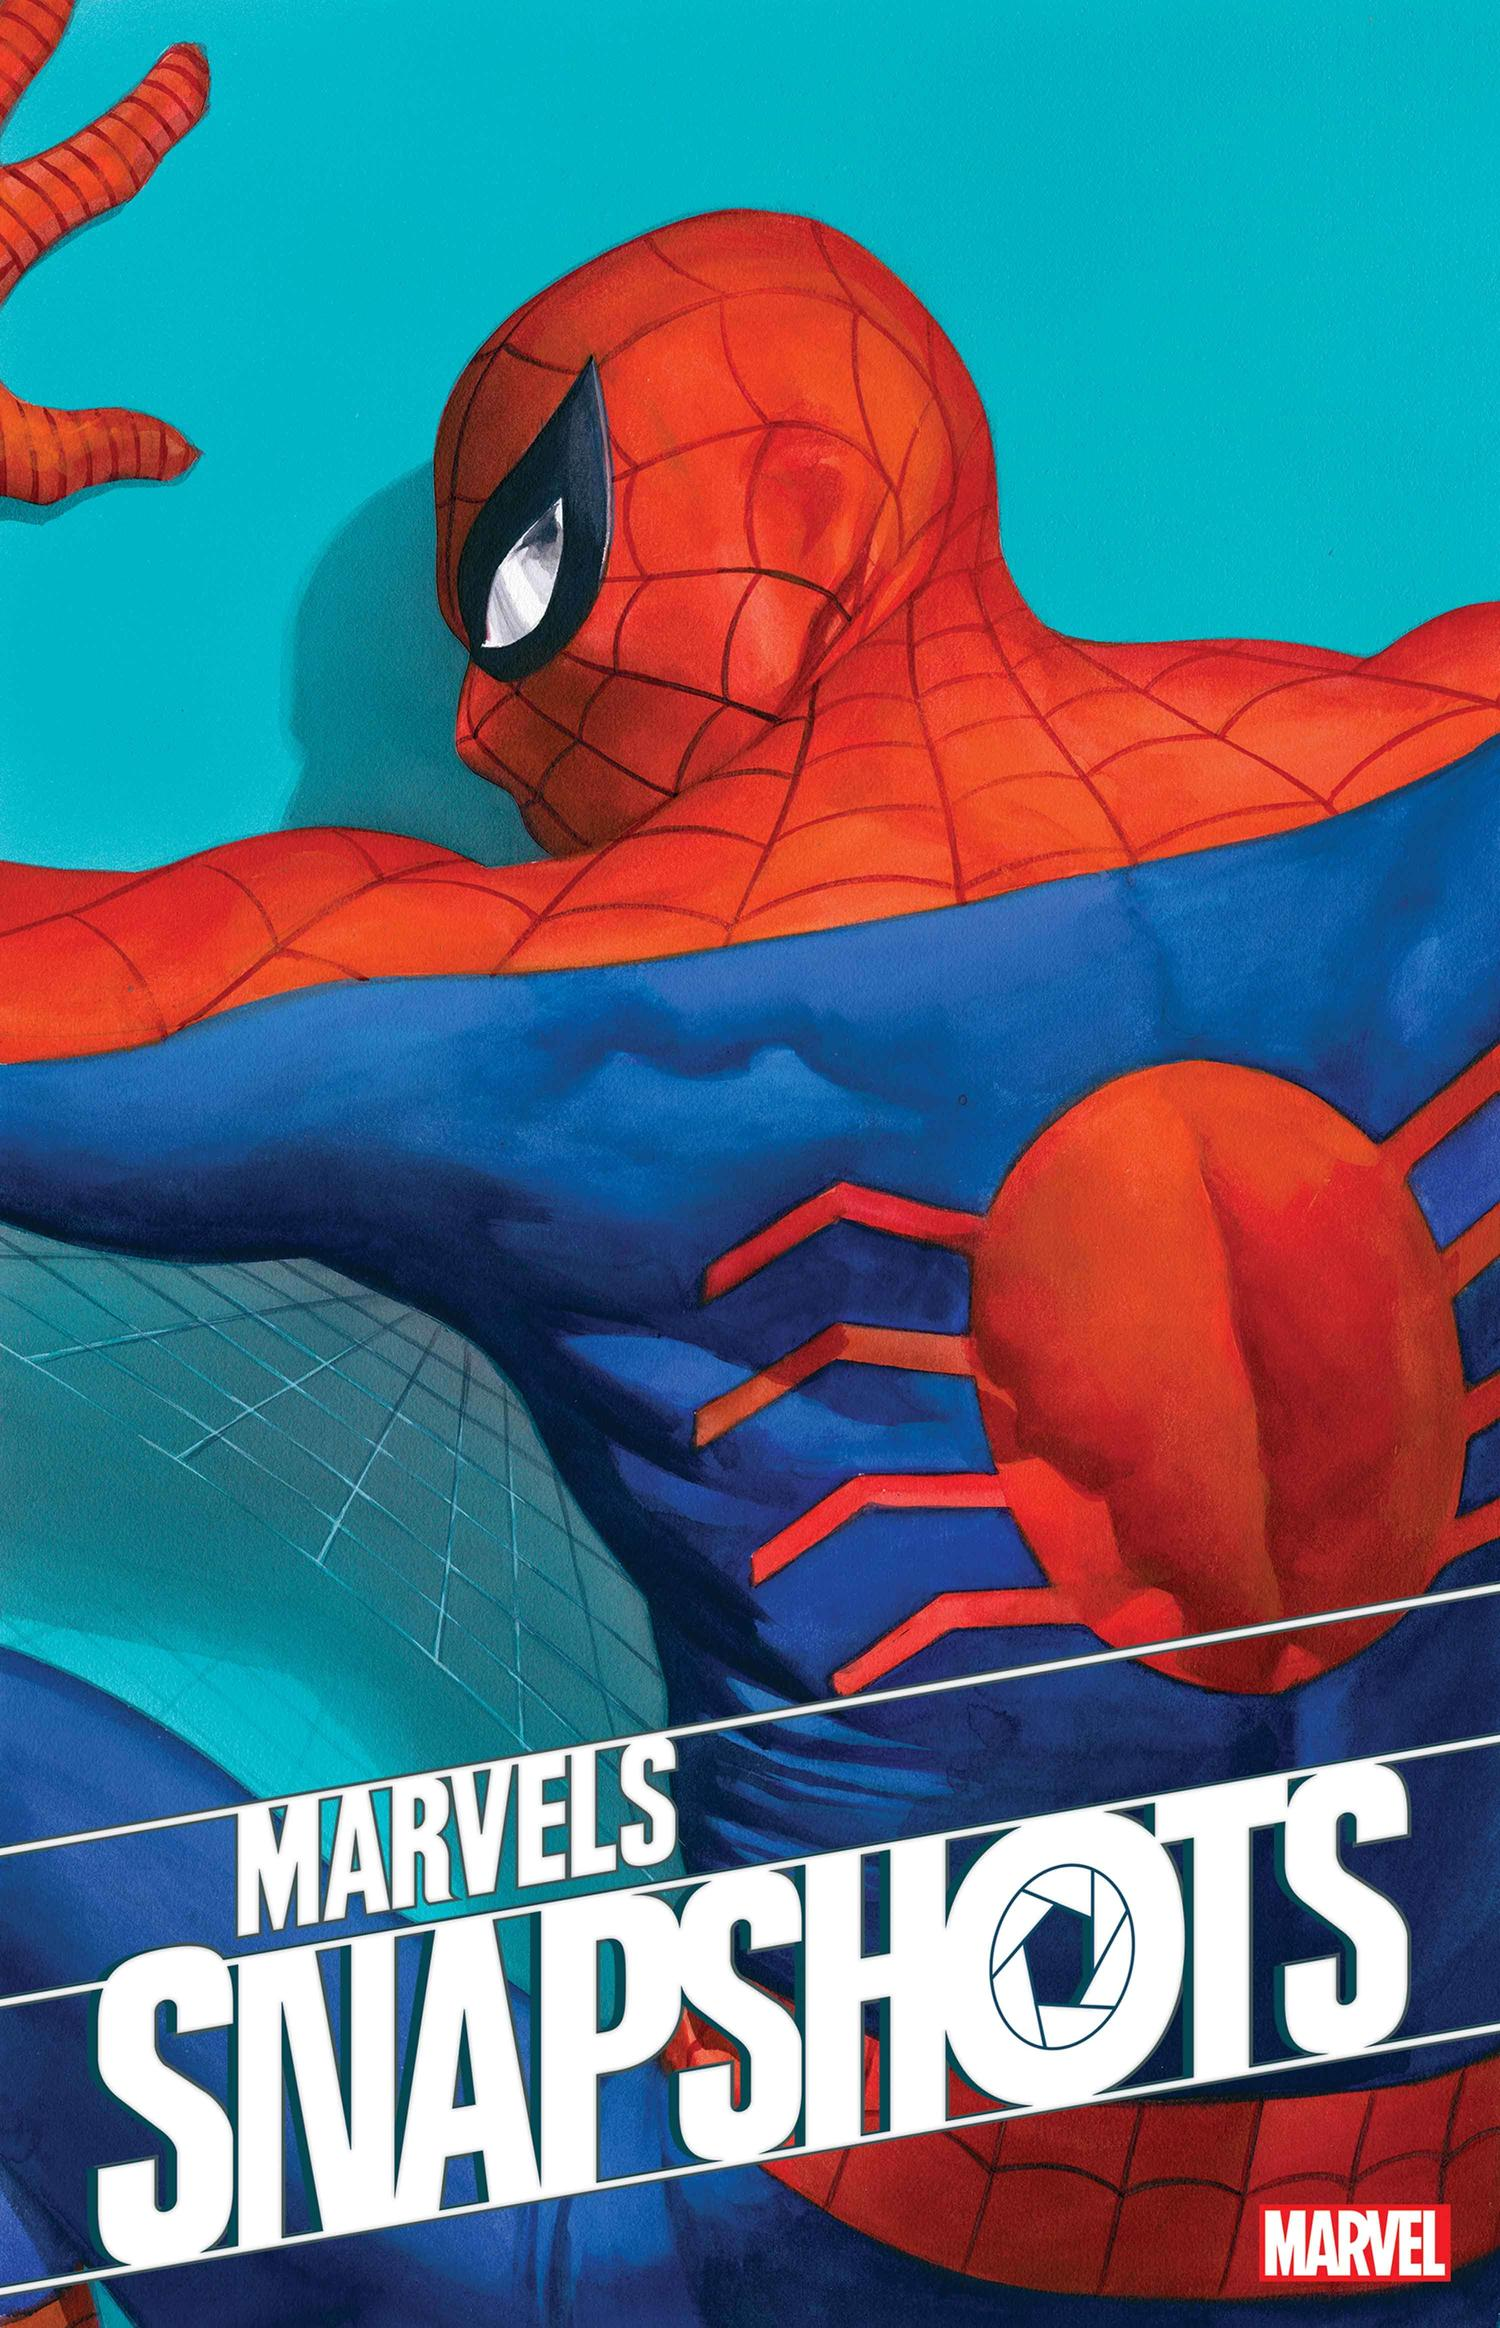 MARVELS SNAPSHOTS: SPIDER-MAN cover by Alex Ross